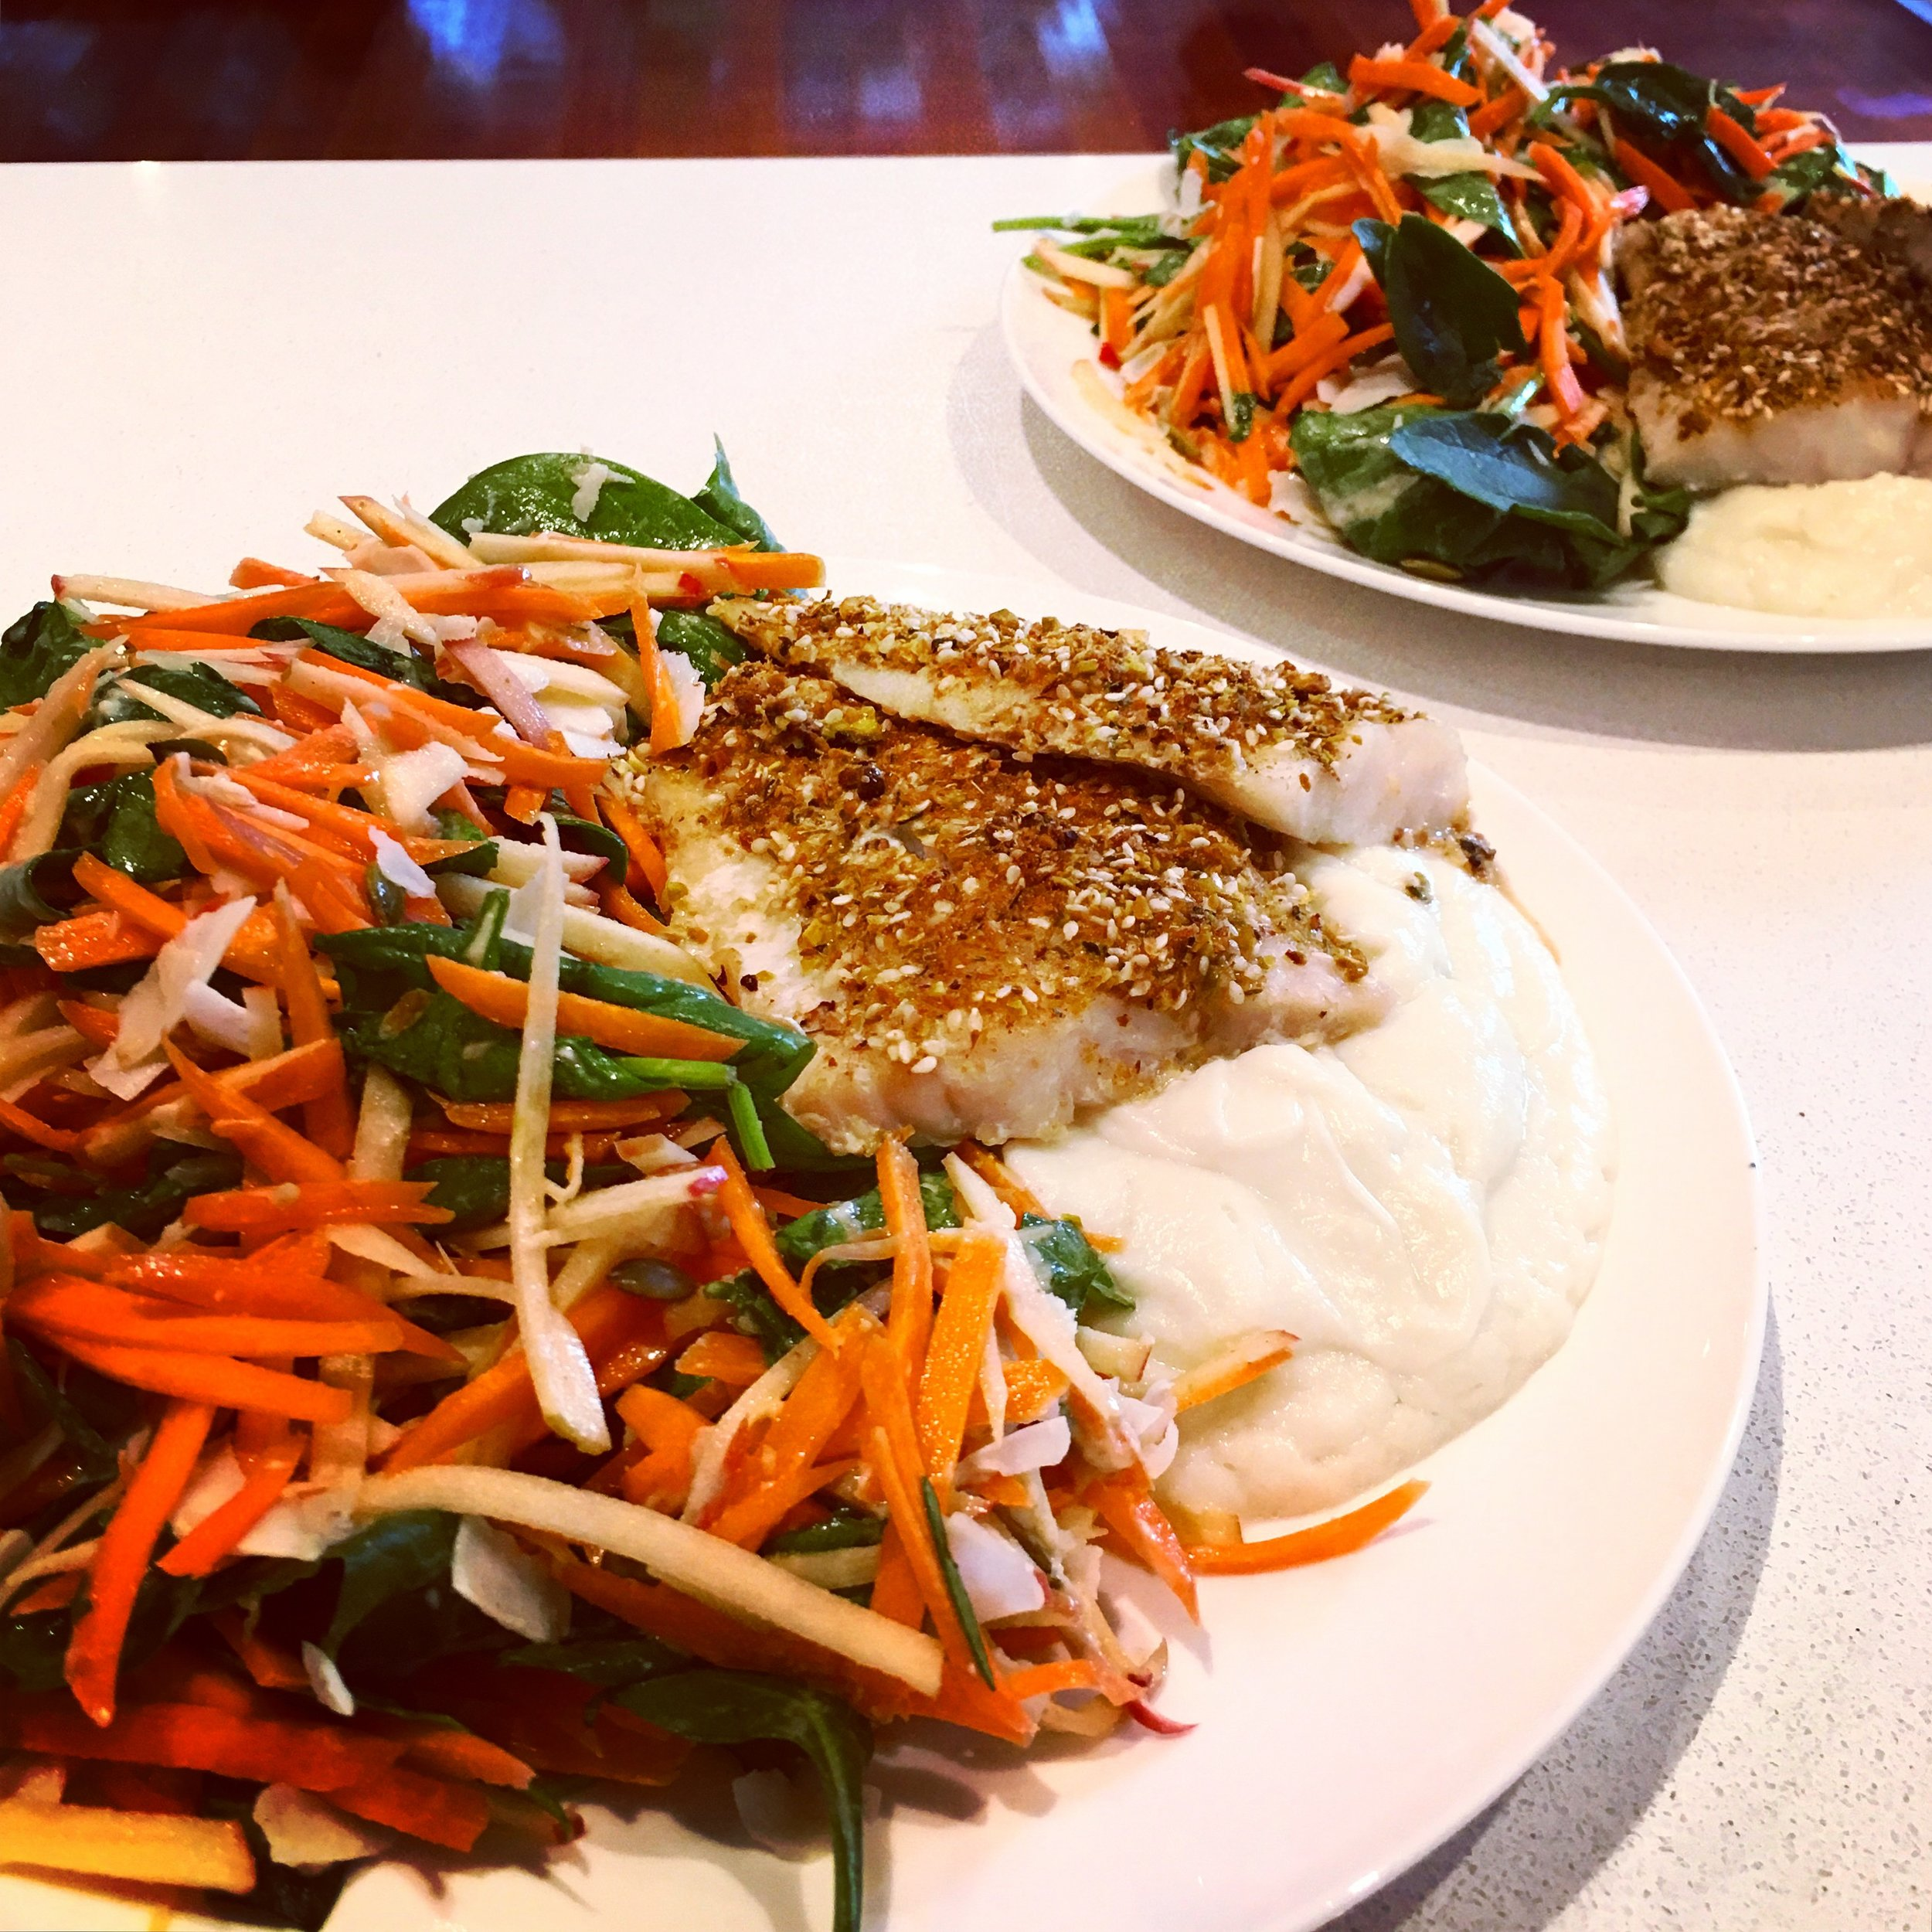 carrot salad and fish